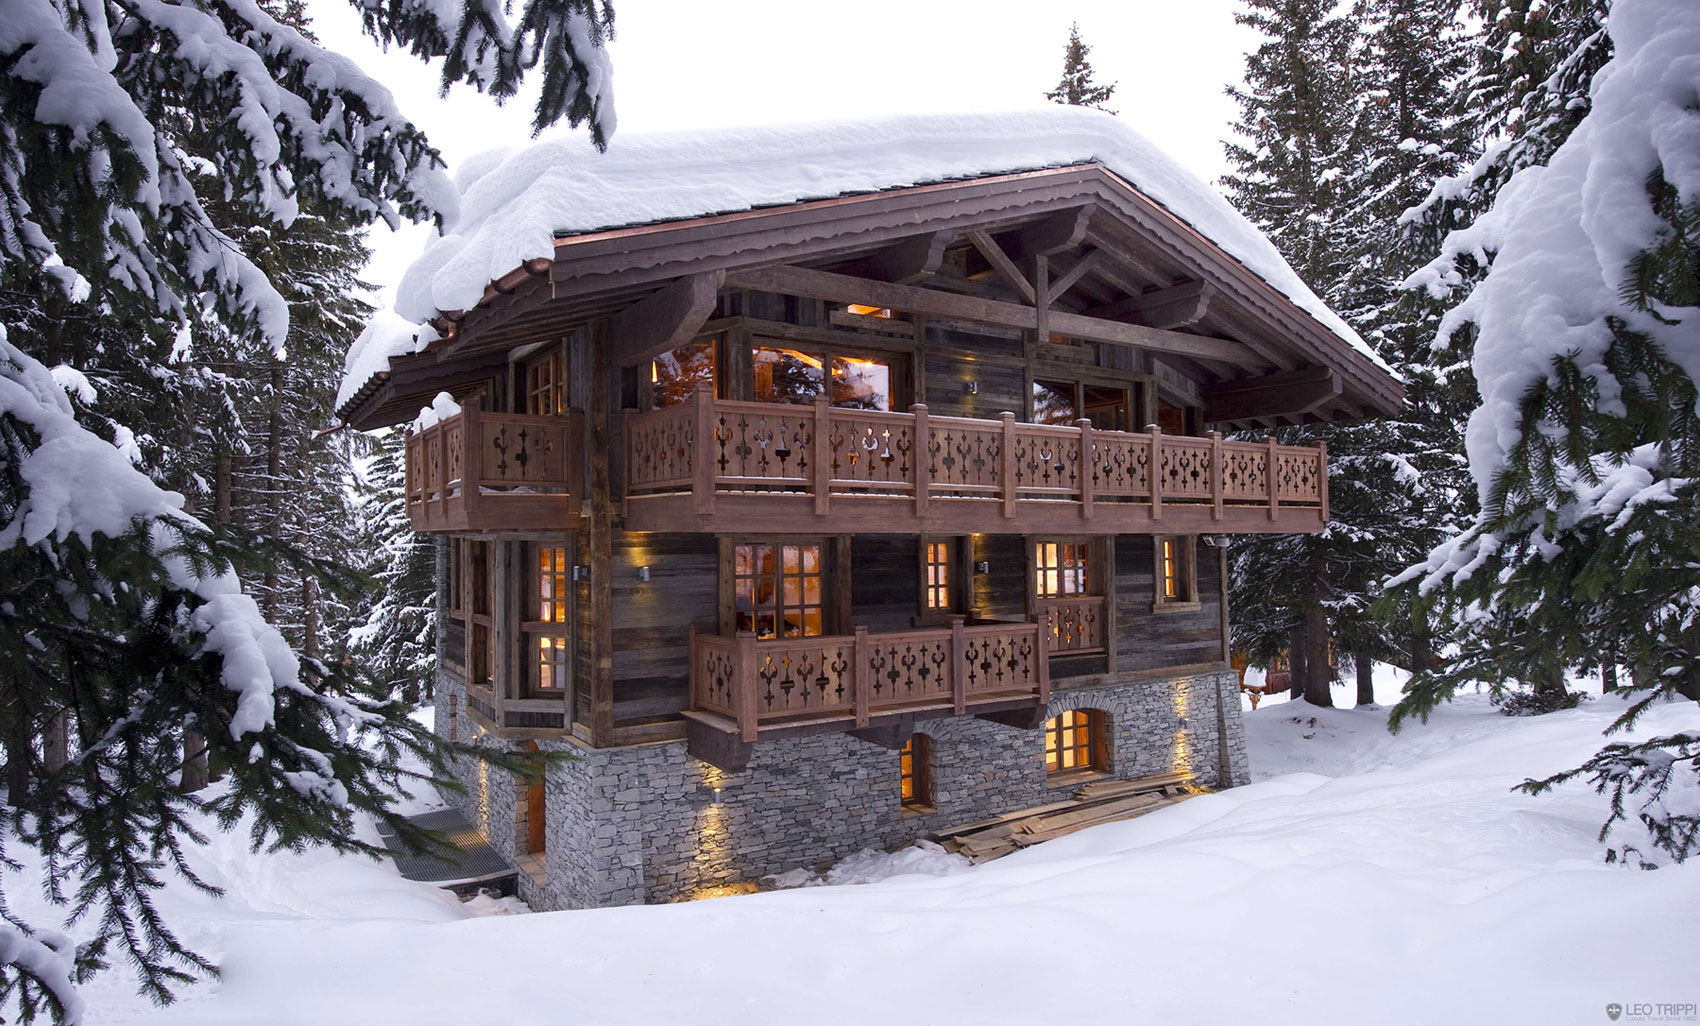 Cozy chalet les gentianes 1850 in the french alps - Chalet architectuur ...